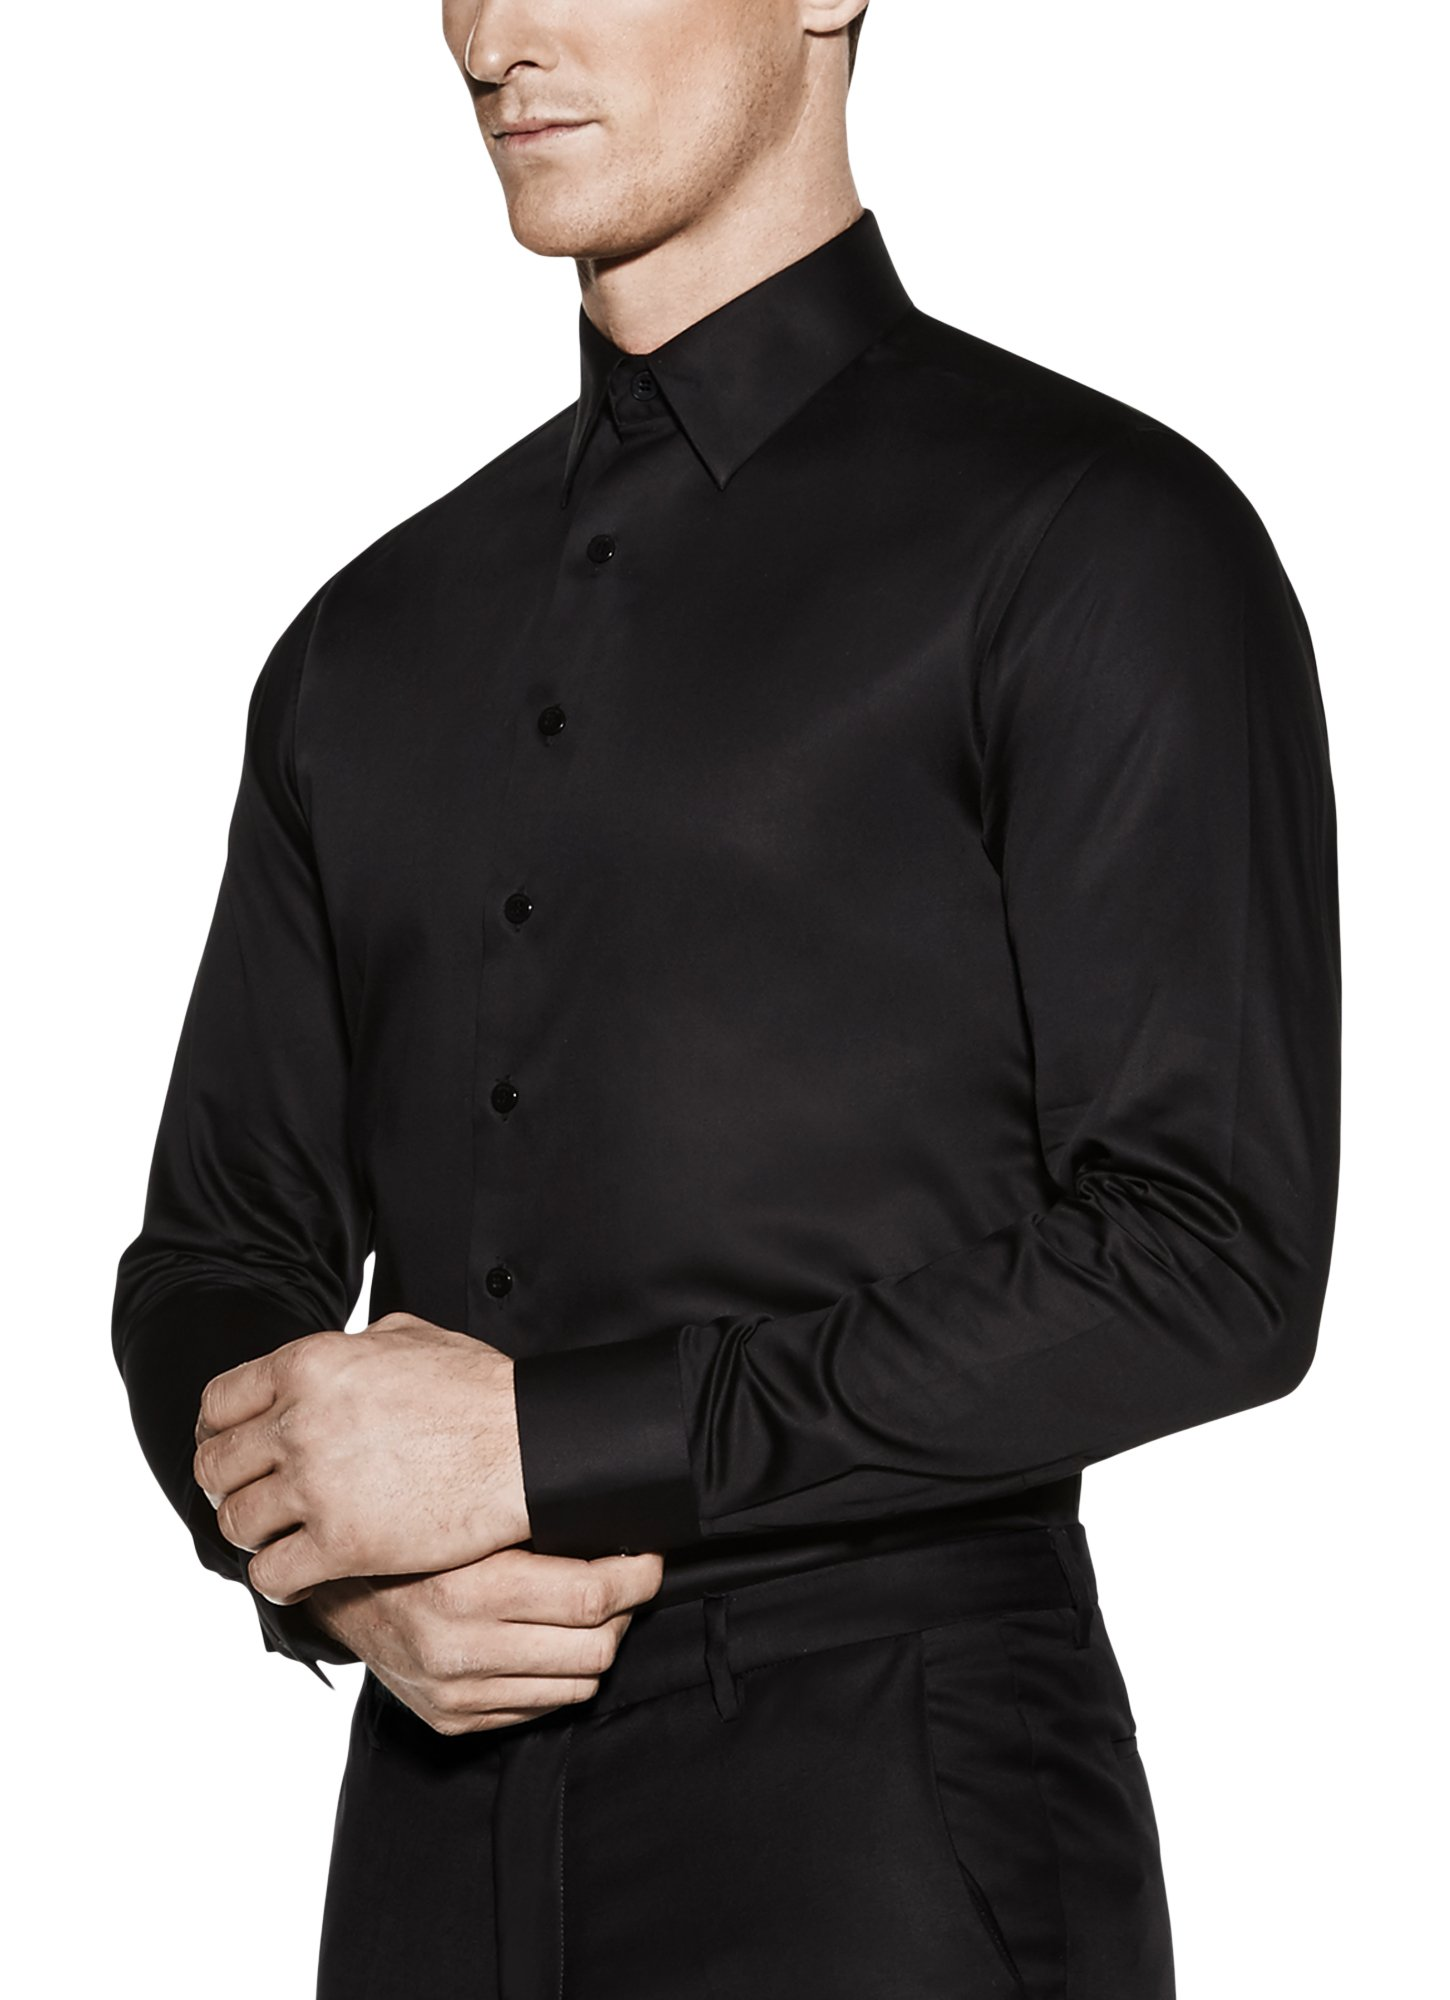 Vardama Men's Performance Black Formal Shirt With Stain Resistant Technology Satin Finish Astor Pl (Small)